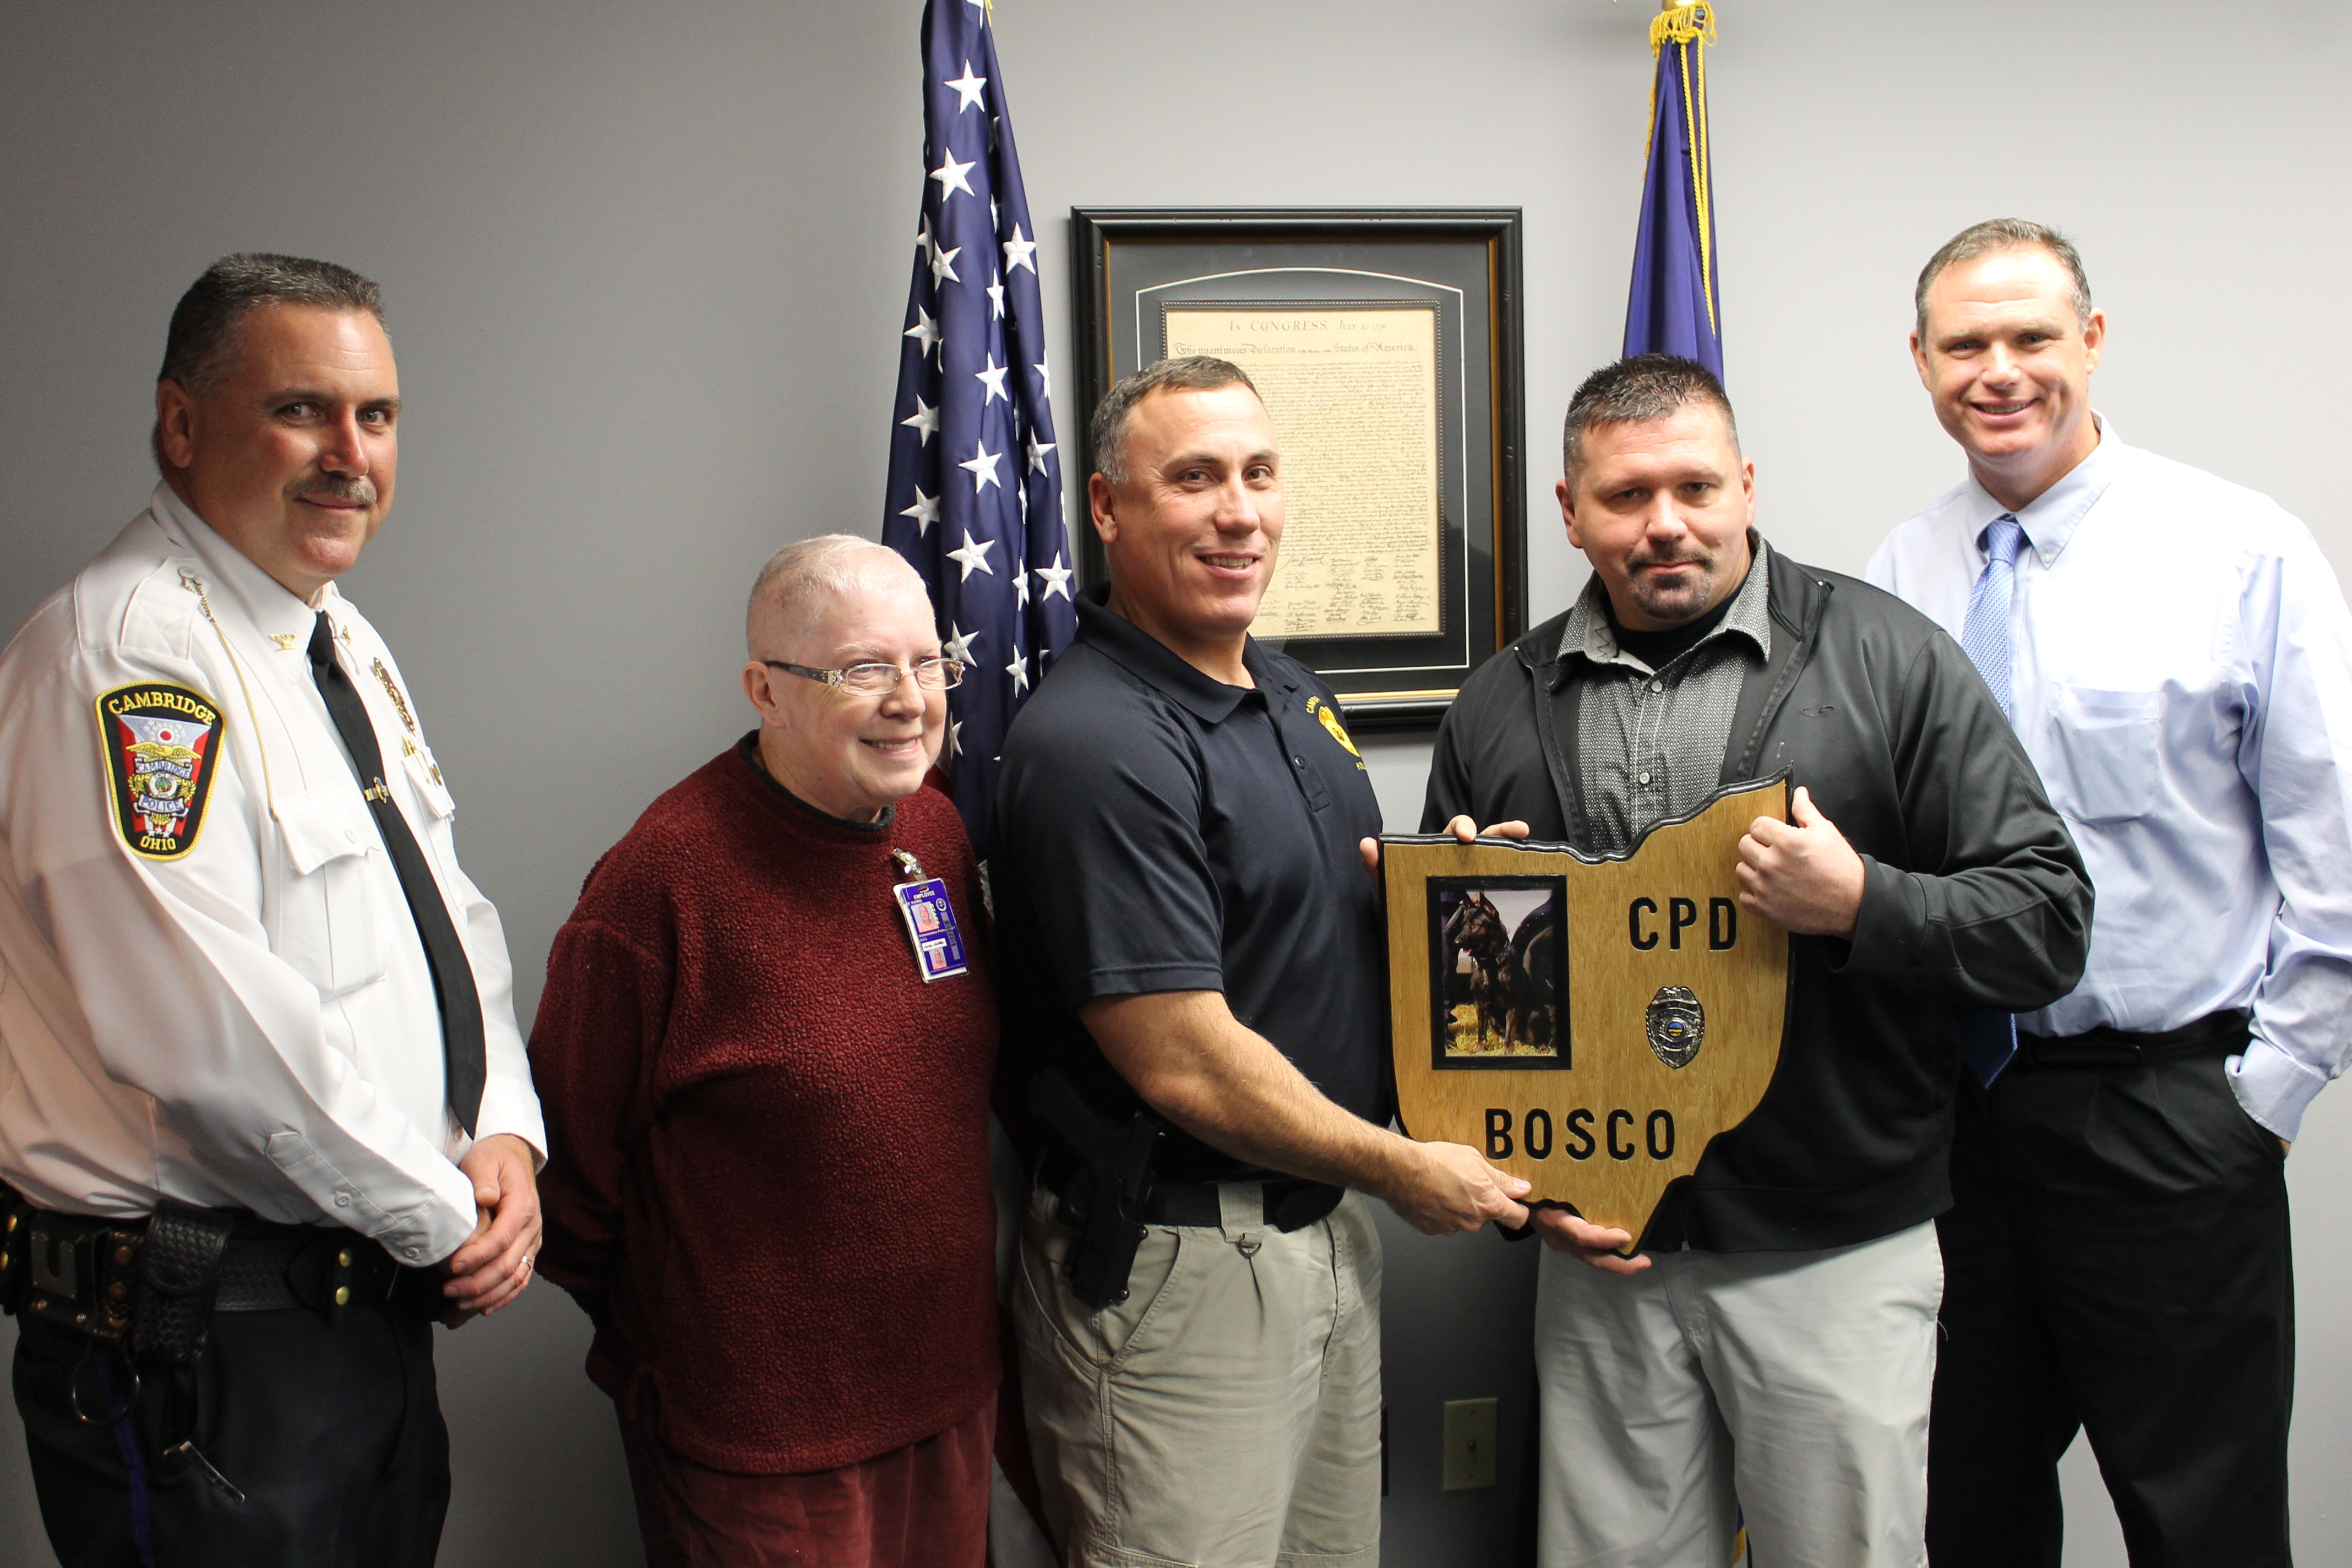 Noble Correctional Institution Presents Plaque for Cambridge Ohio K-9